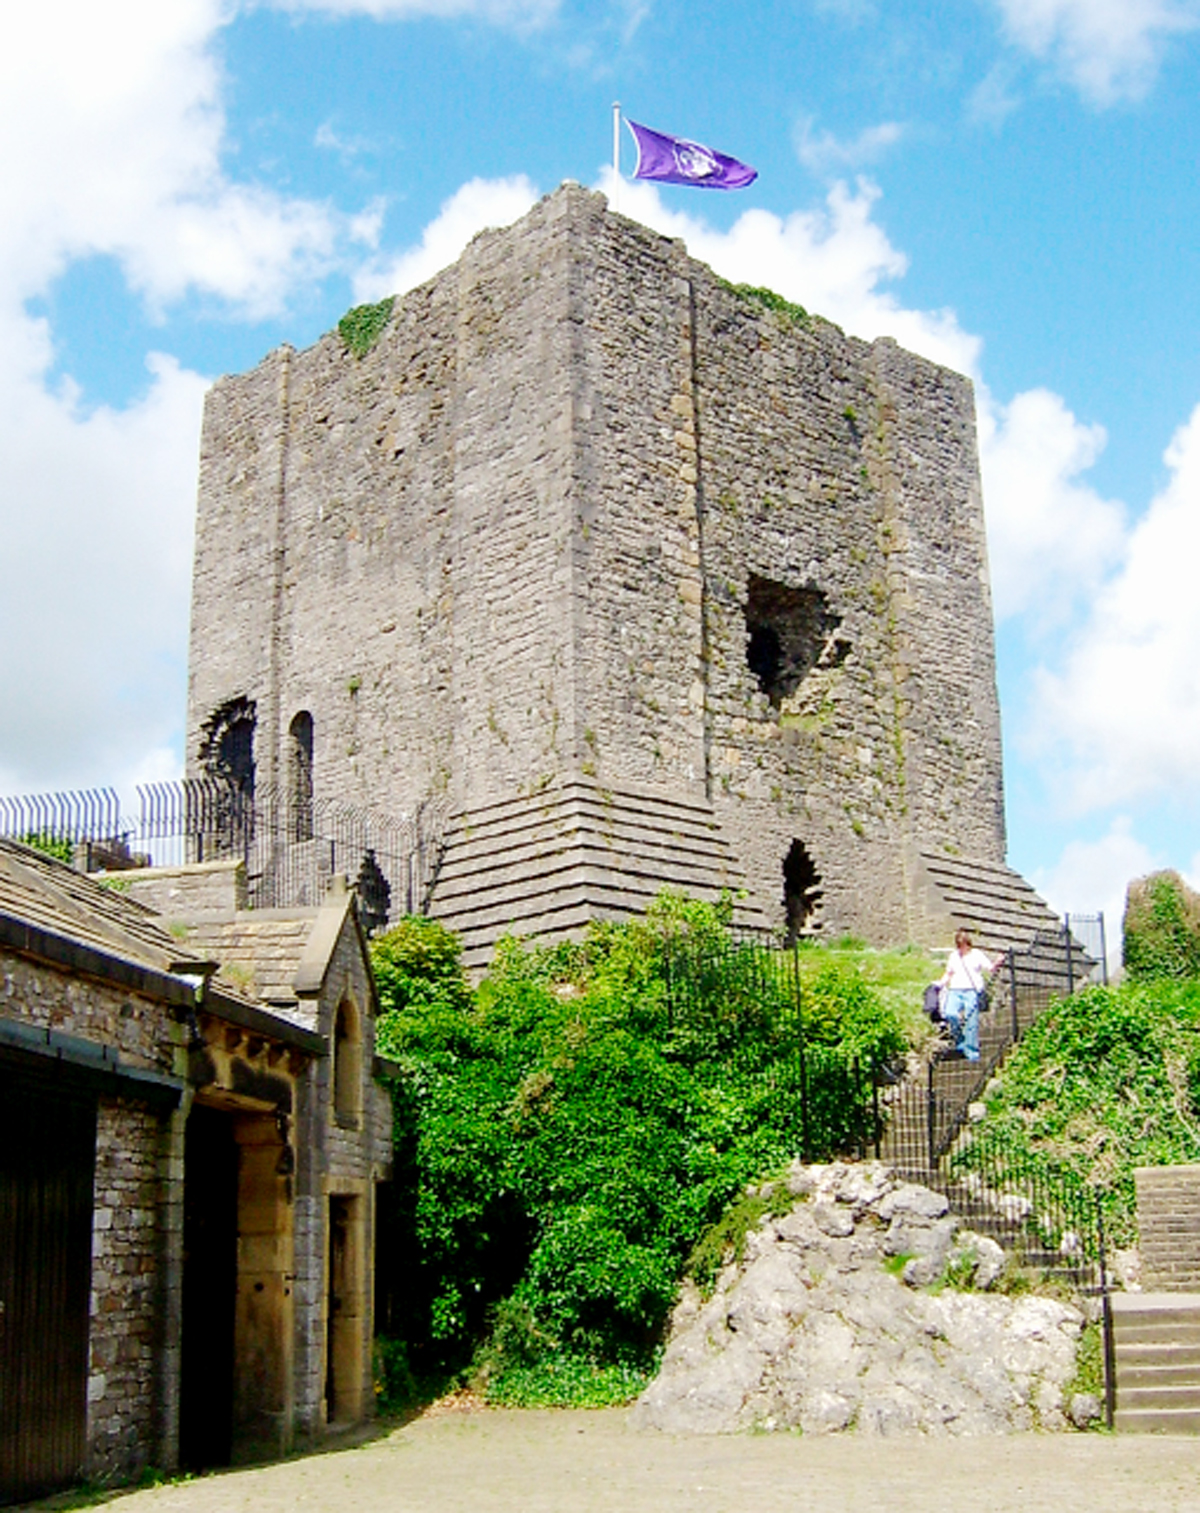 Clitheroe Castle is included in the scheme